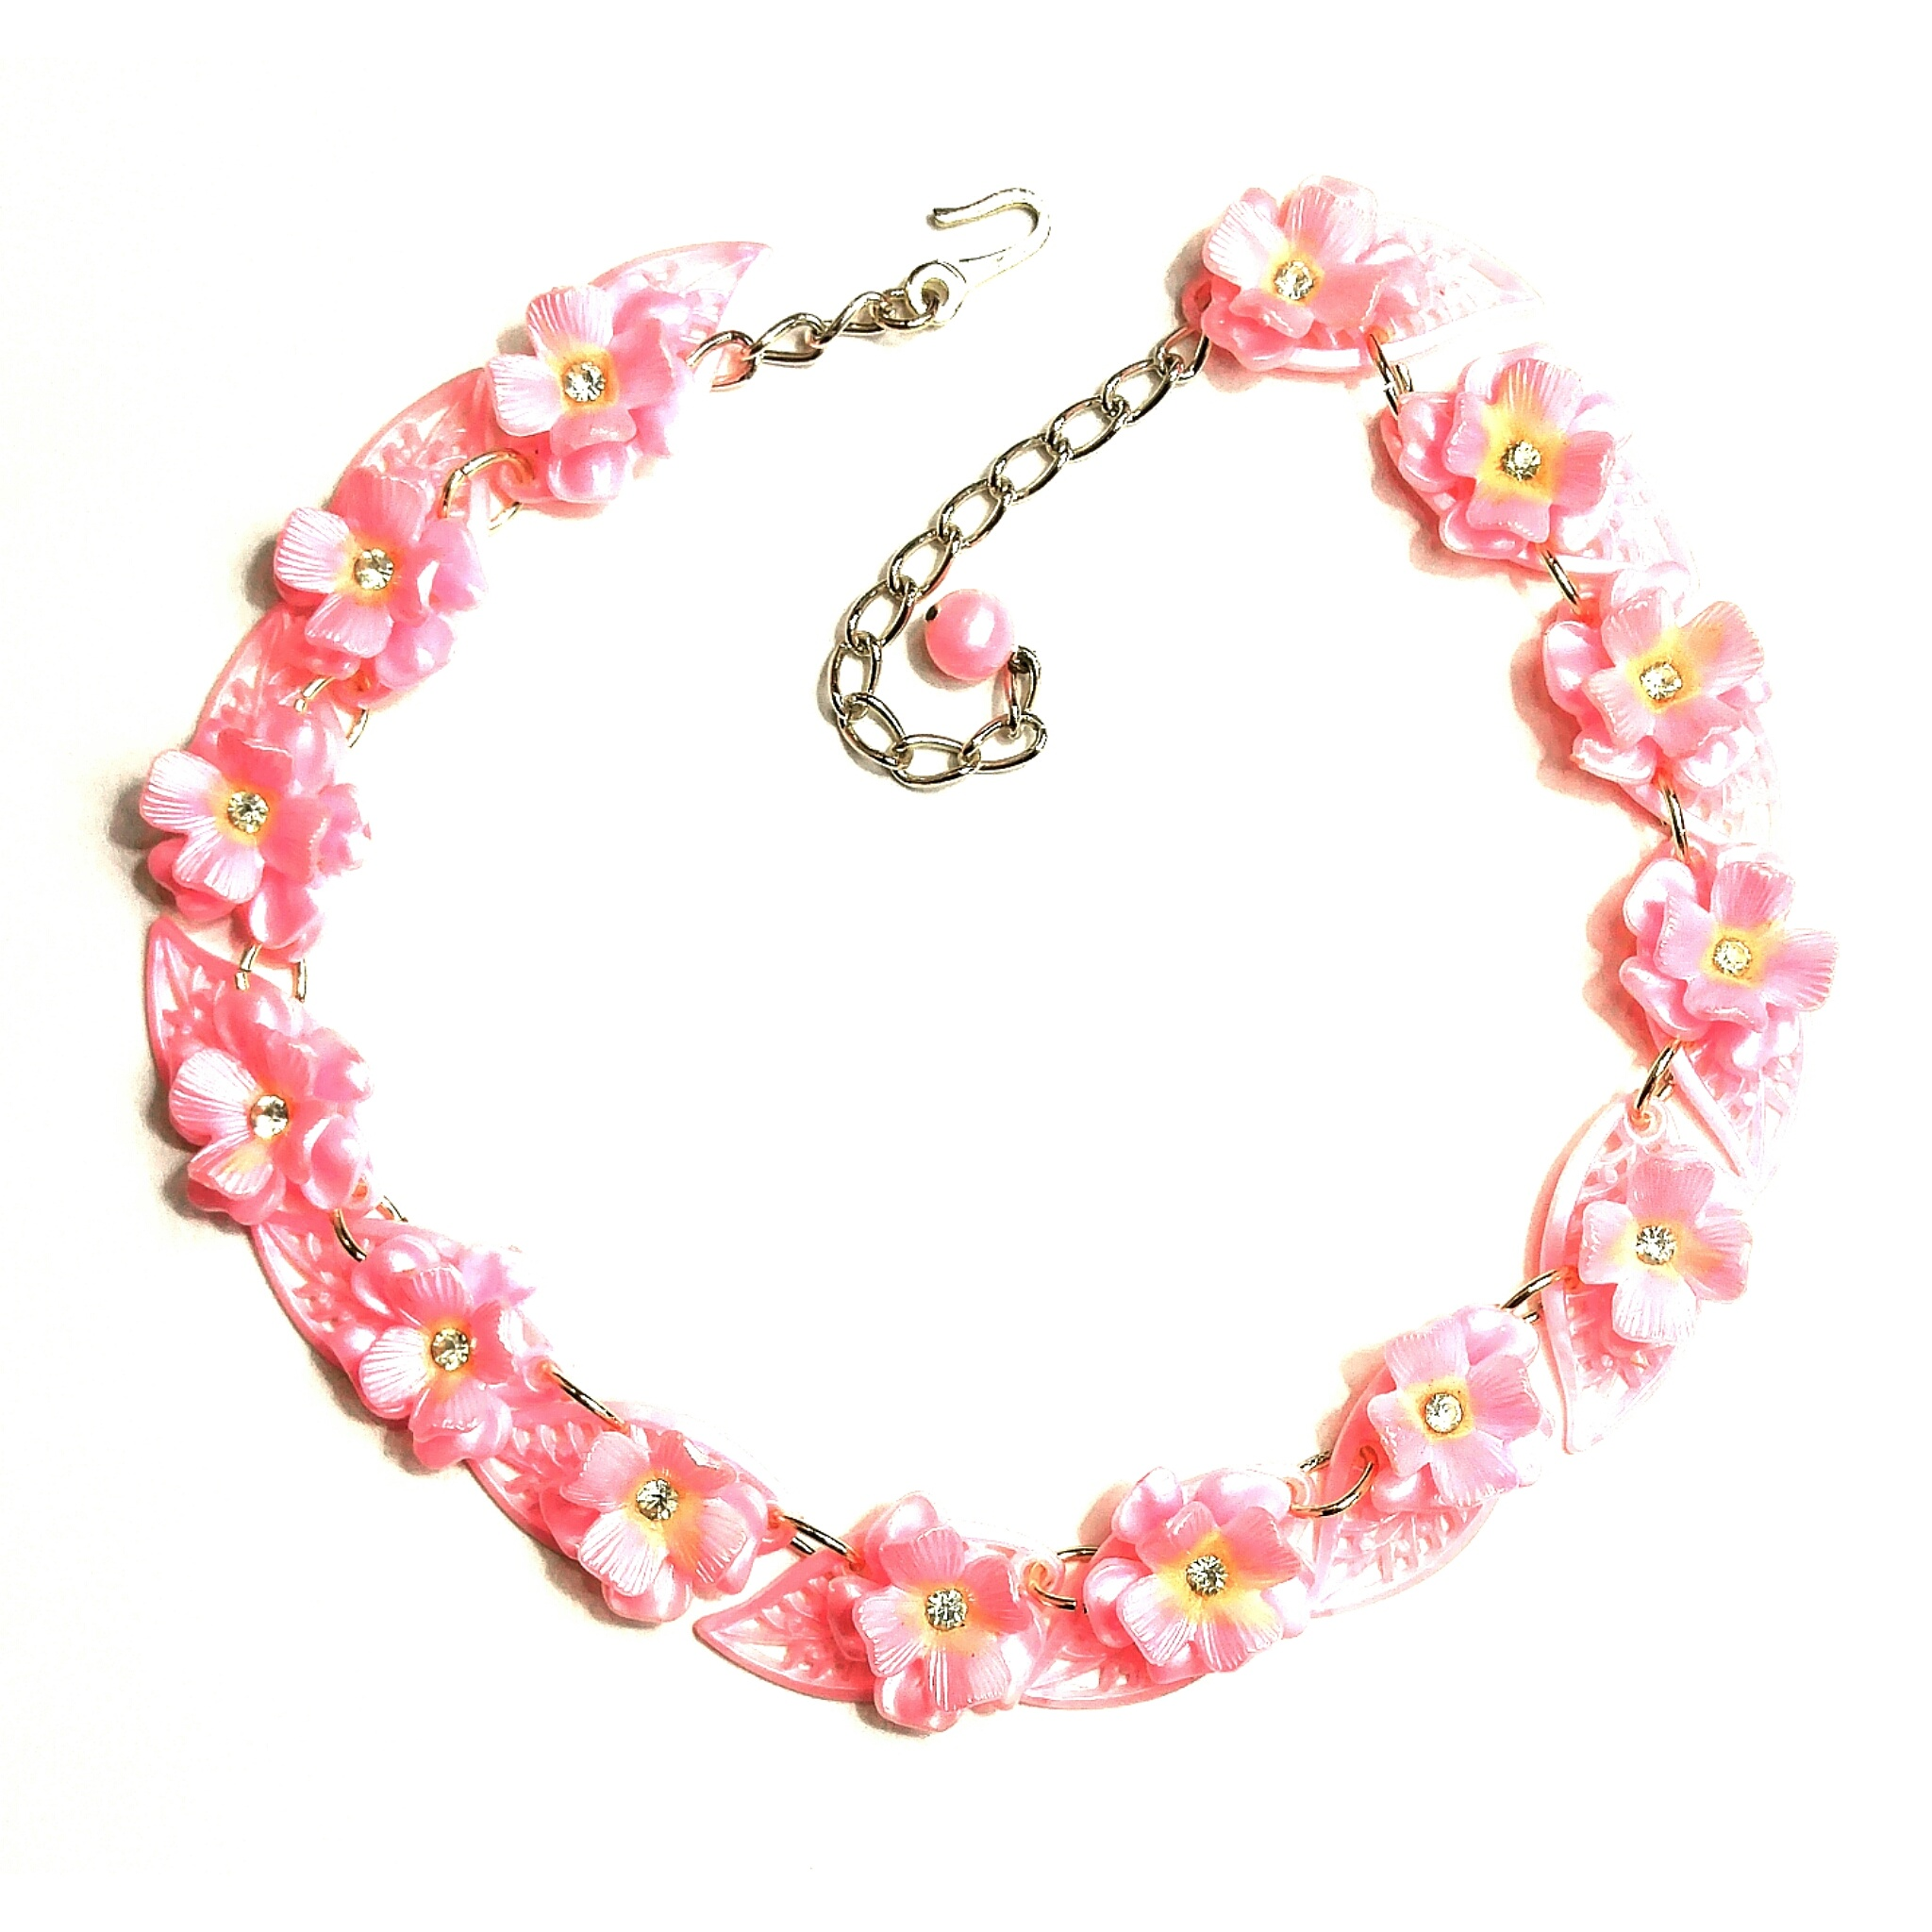 Retro plastic necklace, made in Germany